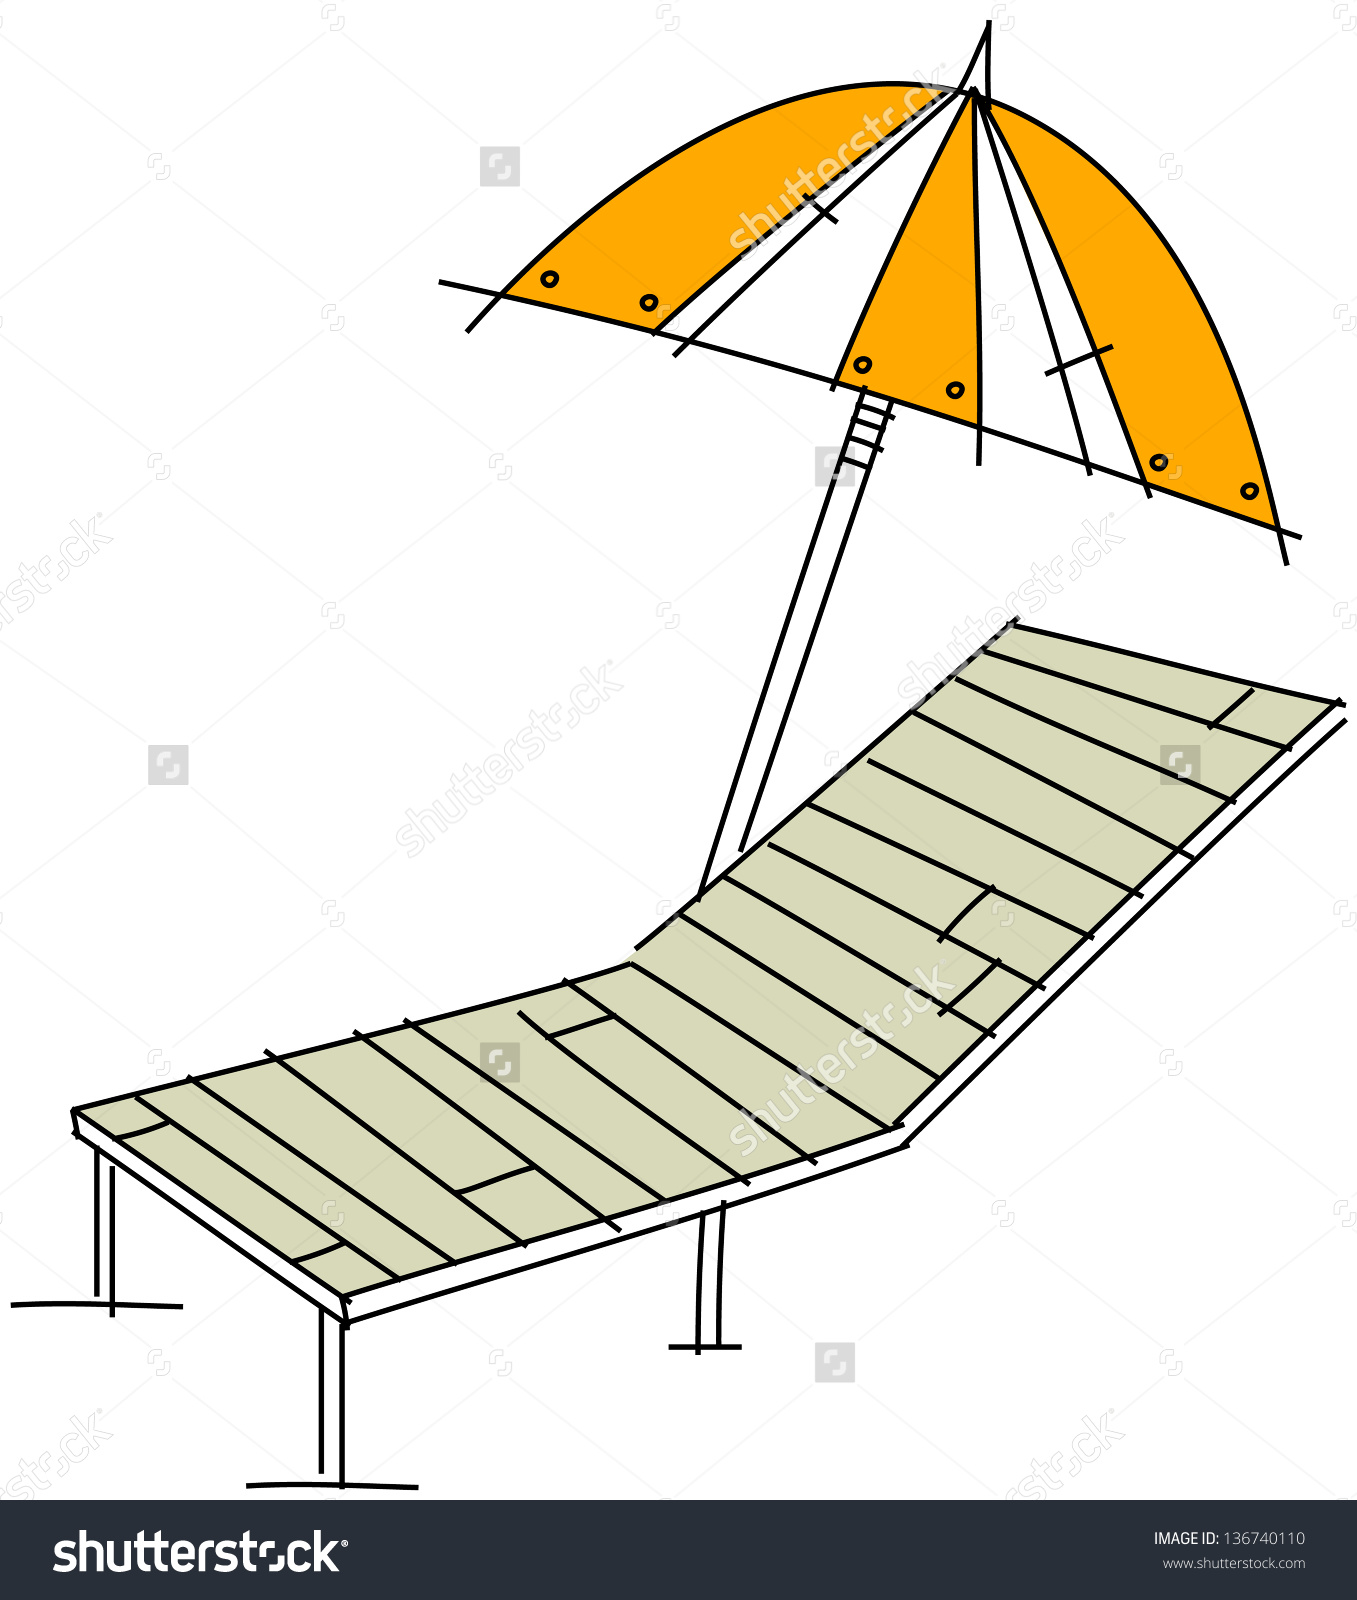 Vector Illustration Of A Parasol And A Sunbed.